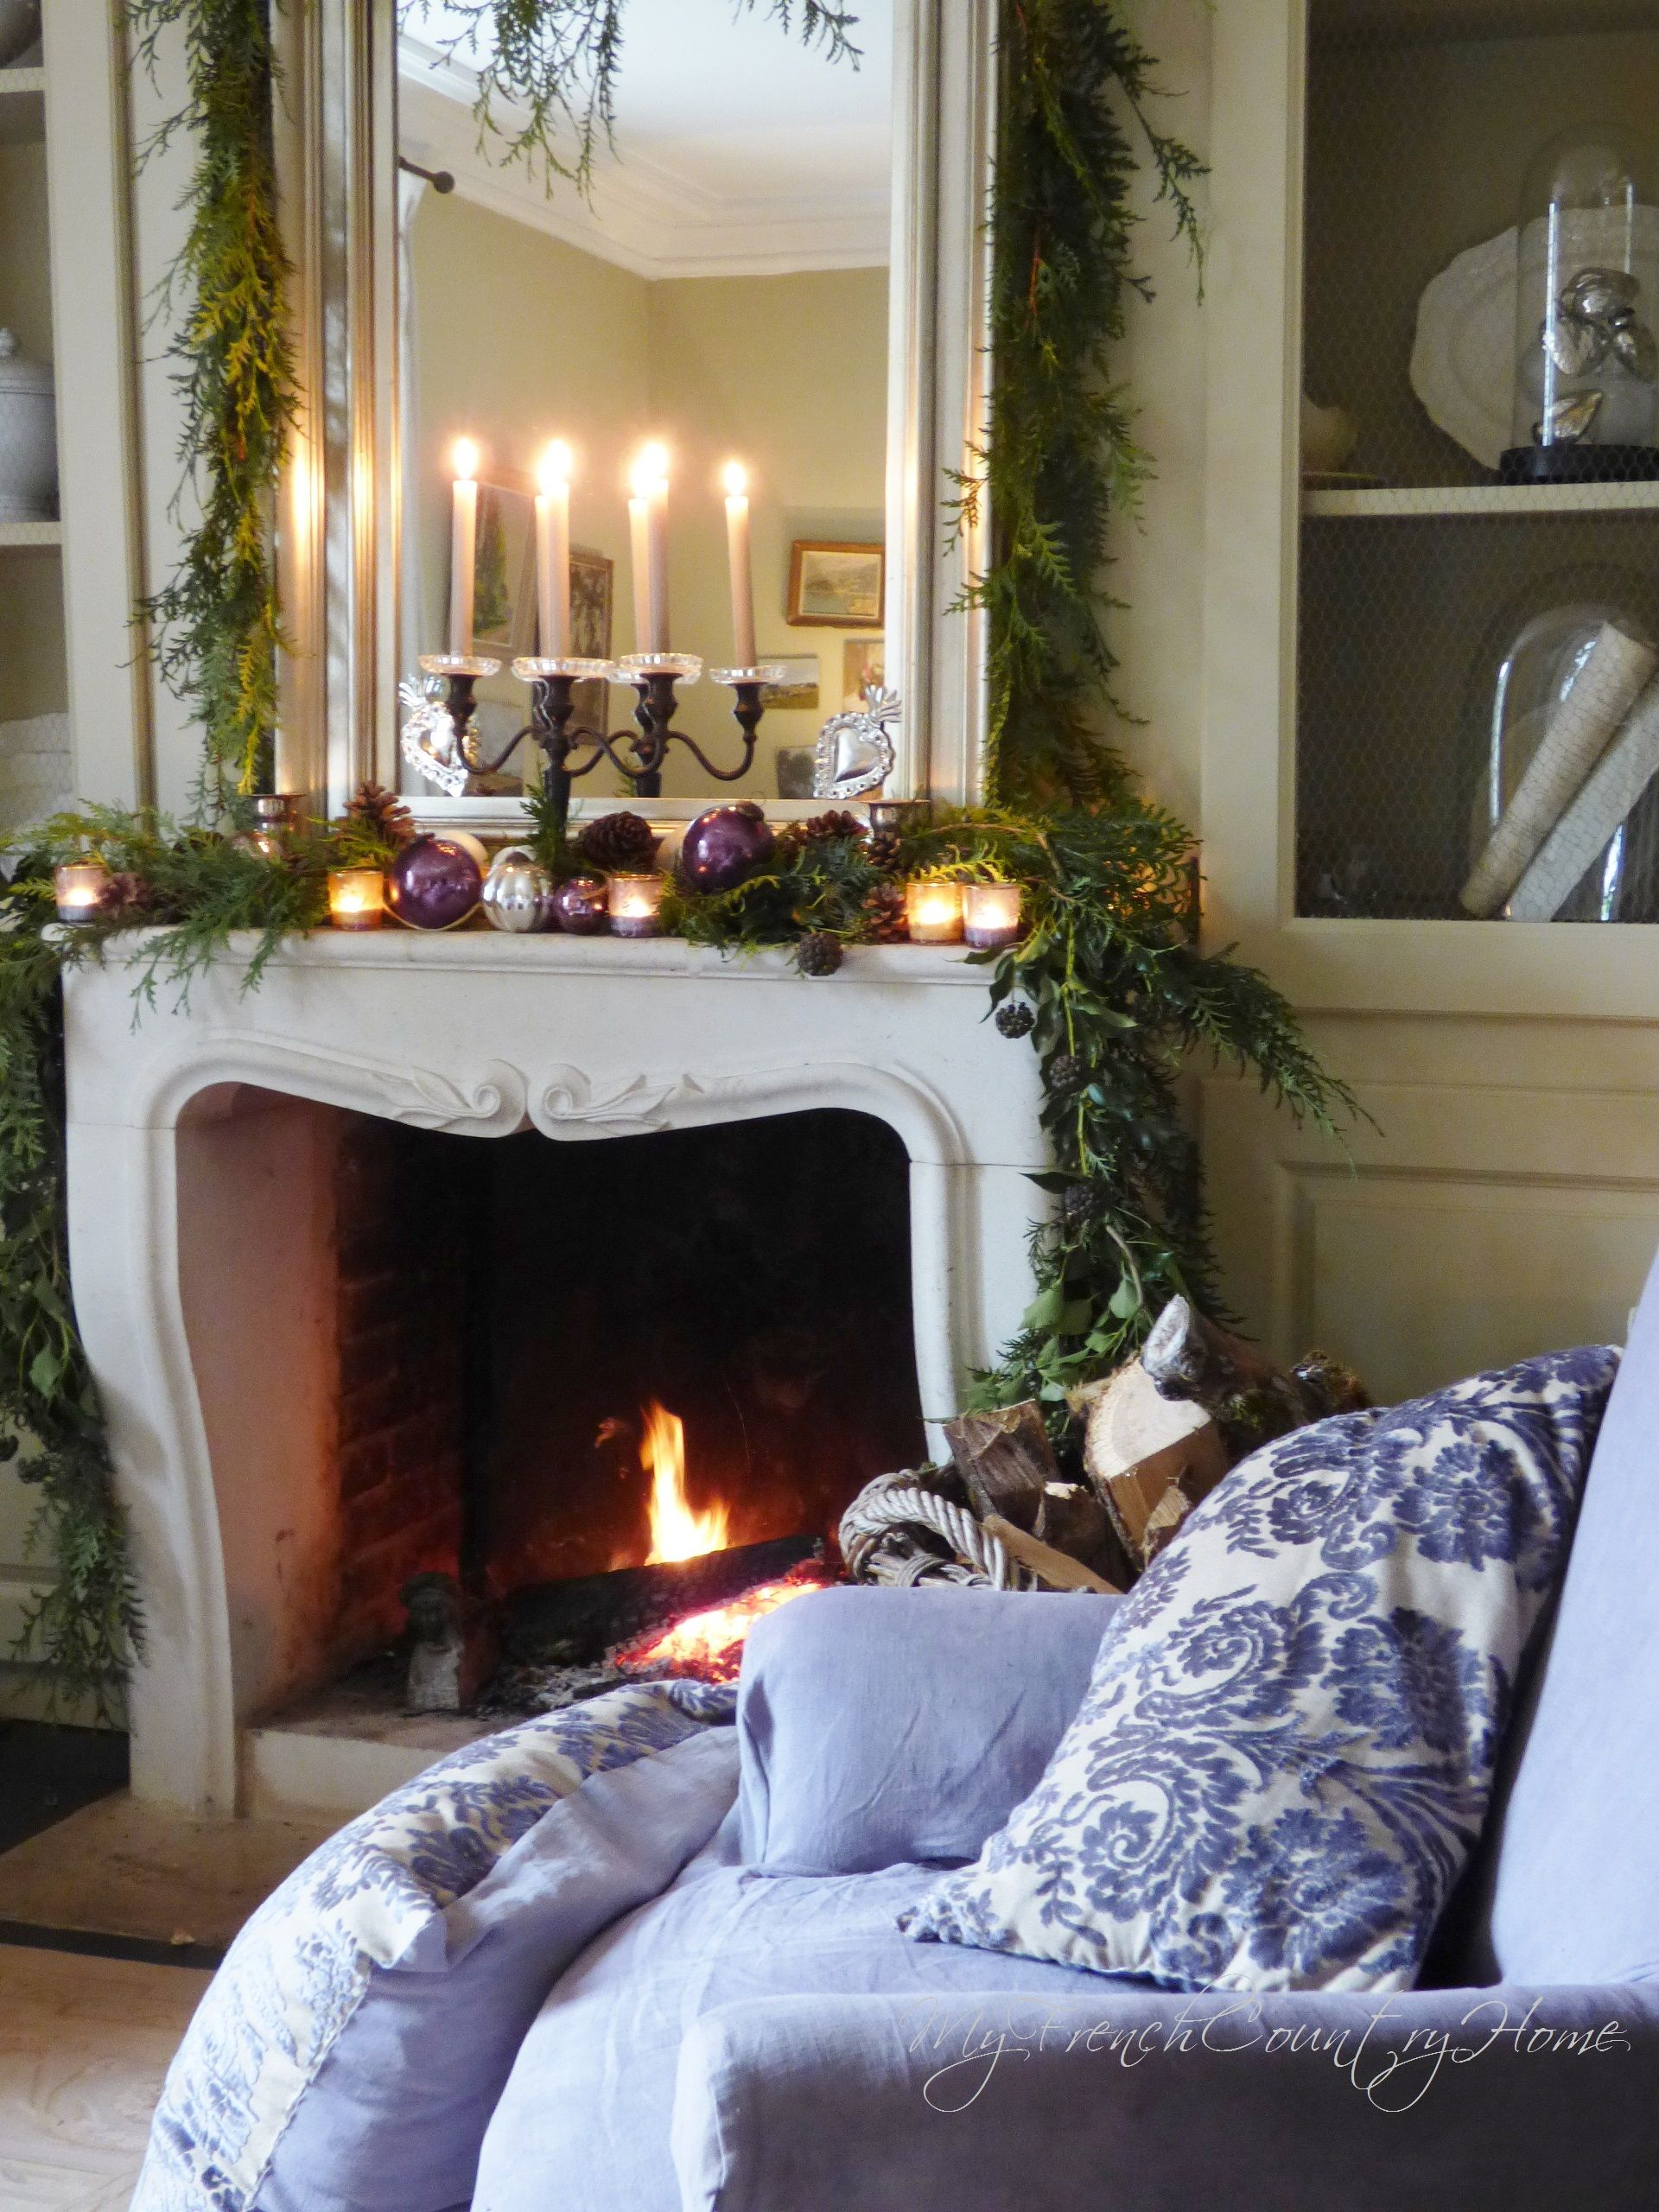 French Country Fireplace French Country Christmas Beautiful Rooms French Country